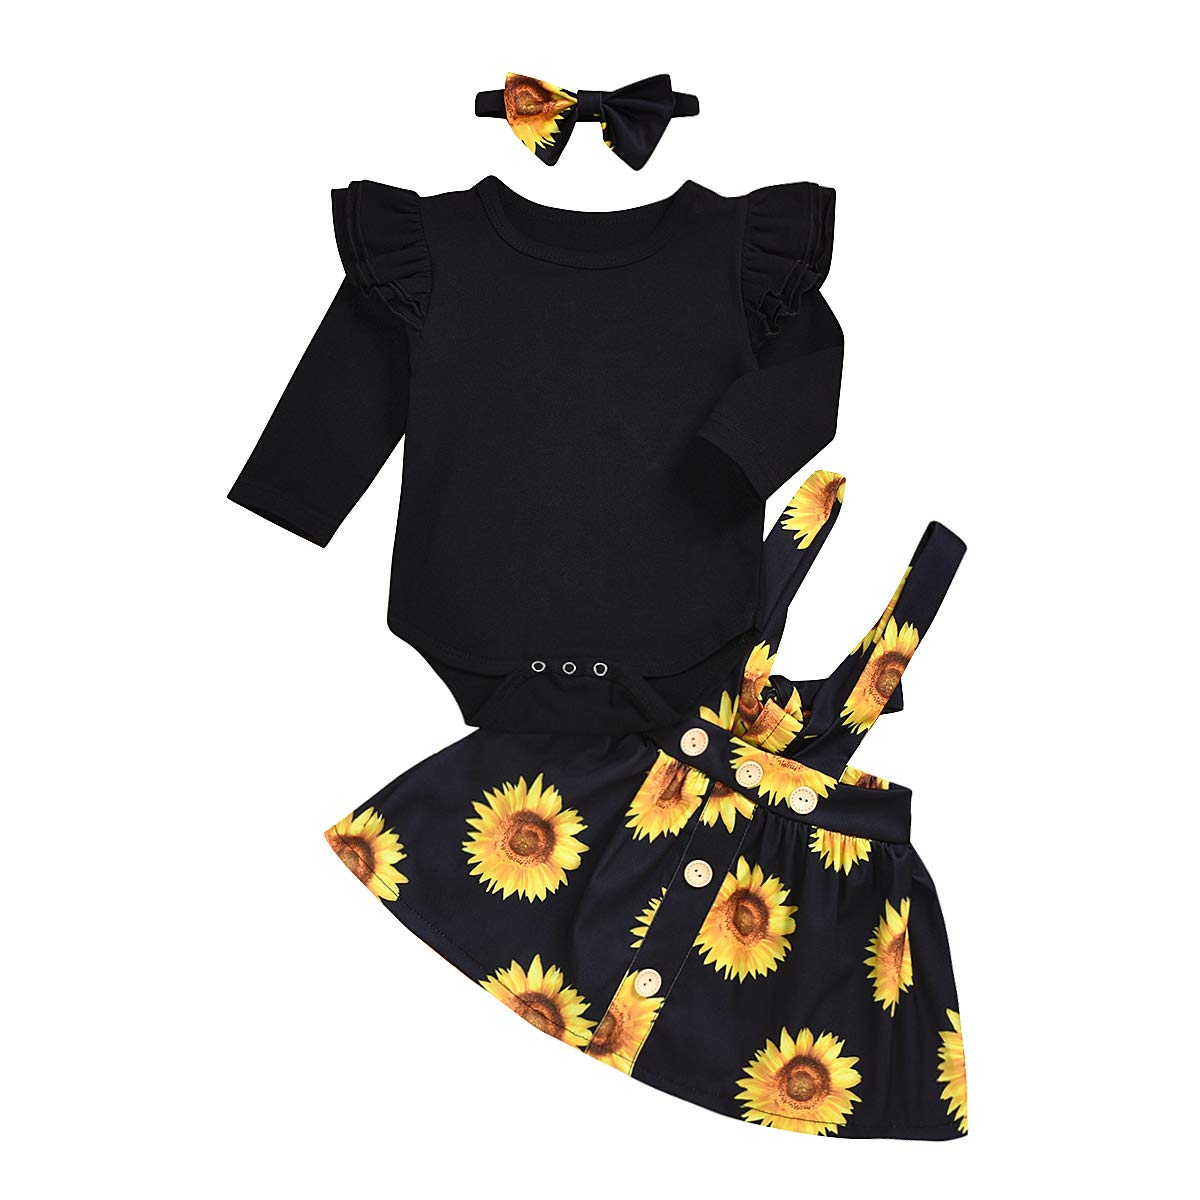 Menglo Newborn Baby Girls Sunflower Outfit Ruffle Long Sleeve Romper Tops+Suspender Skirt+Headband 3PCS Infant Clothing Set